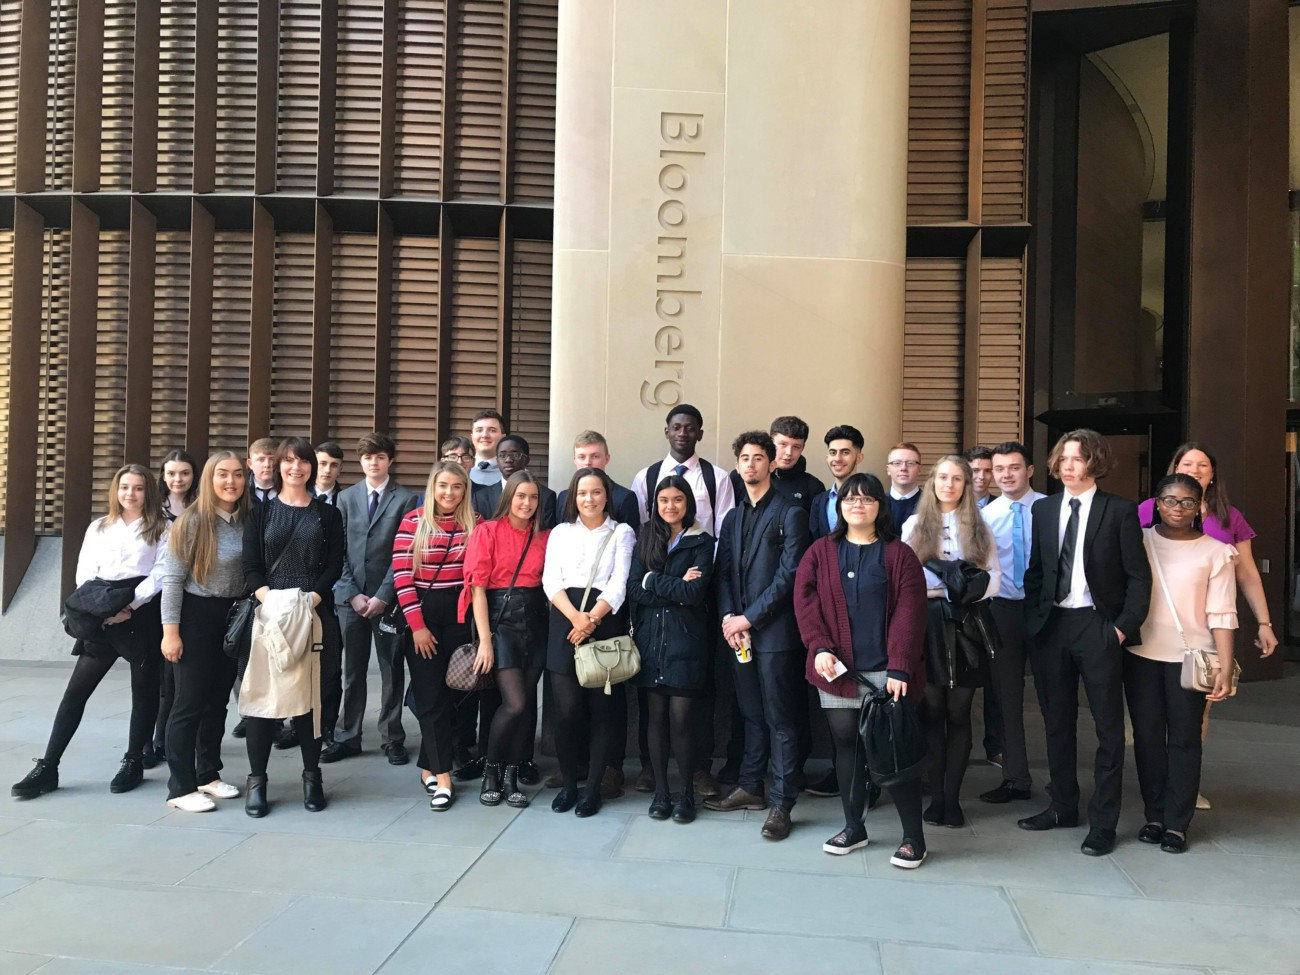 6th Form Morgan Stanley Co-operation Ireland — St Michael's